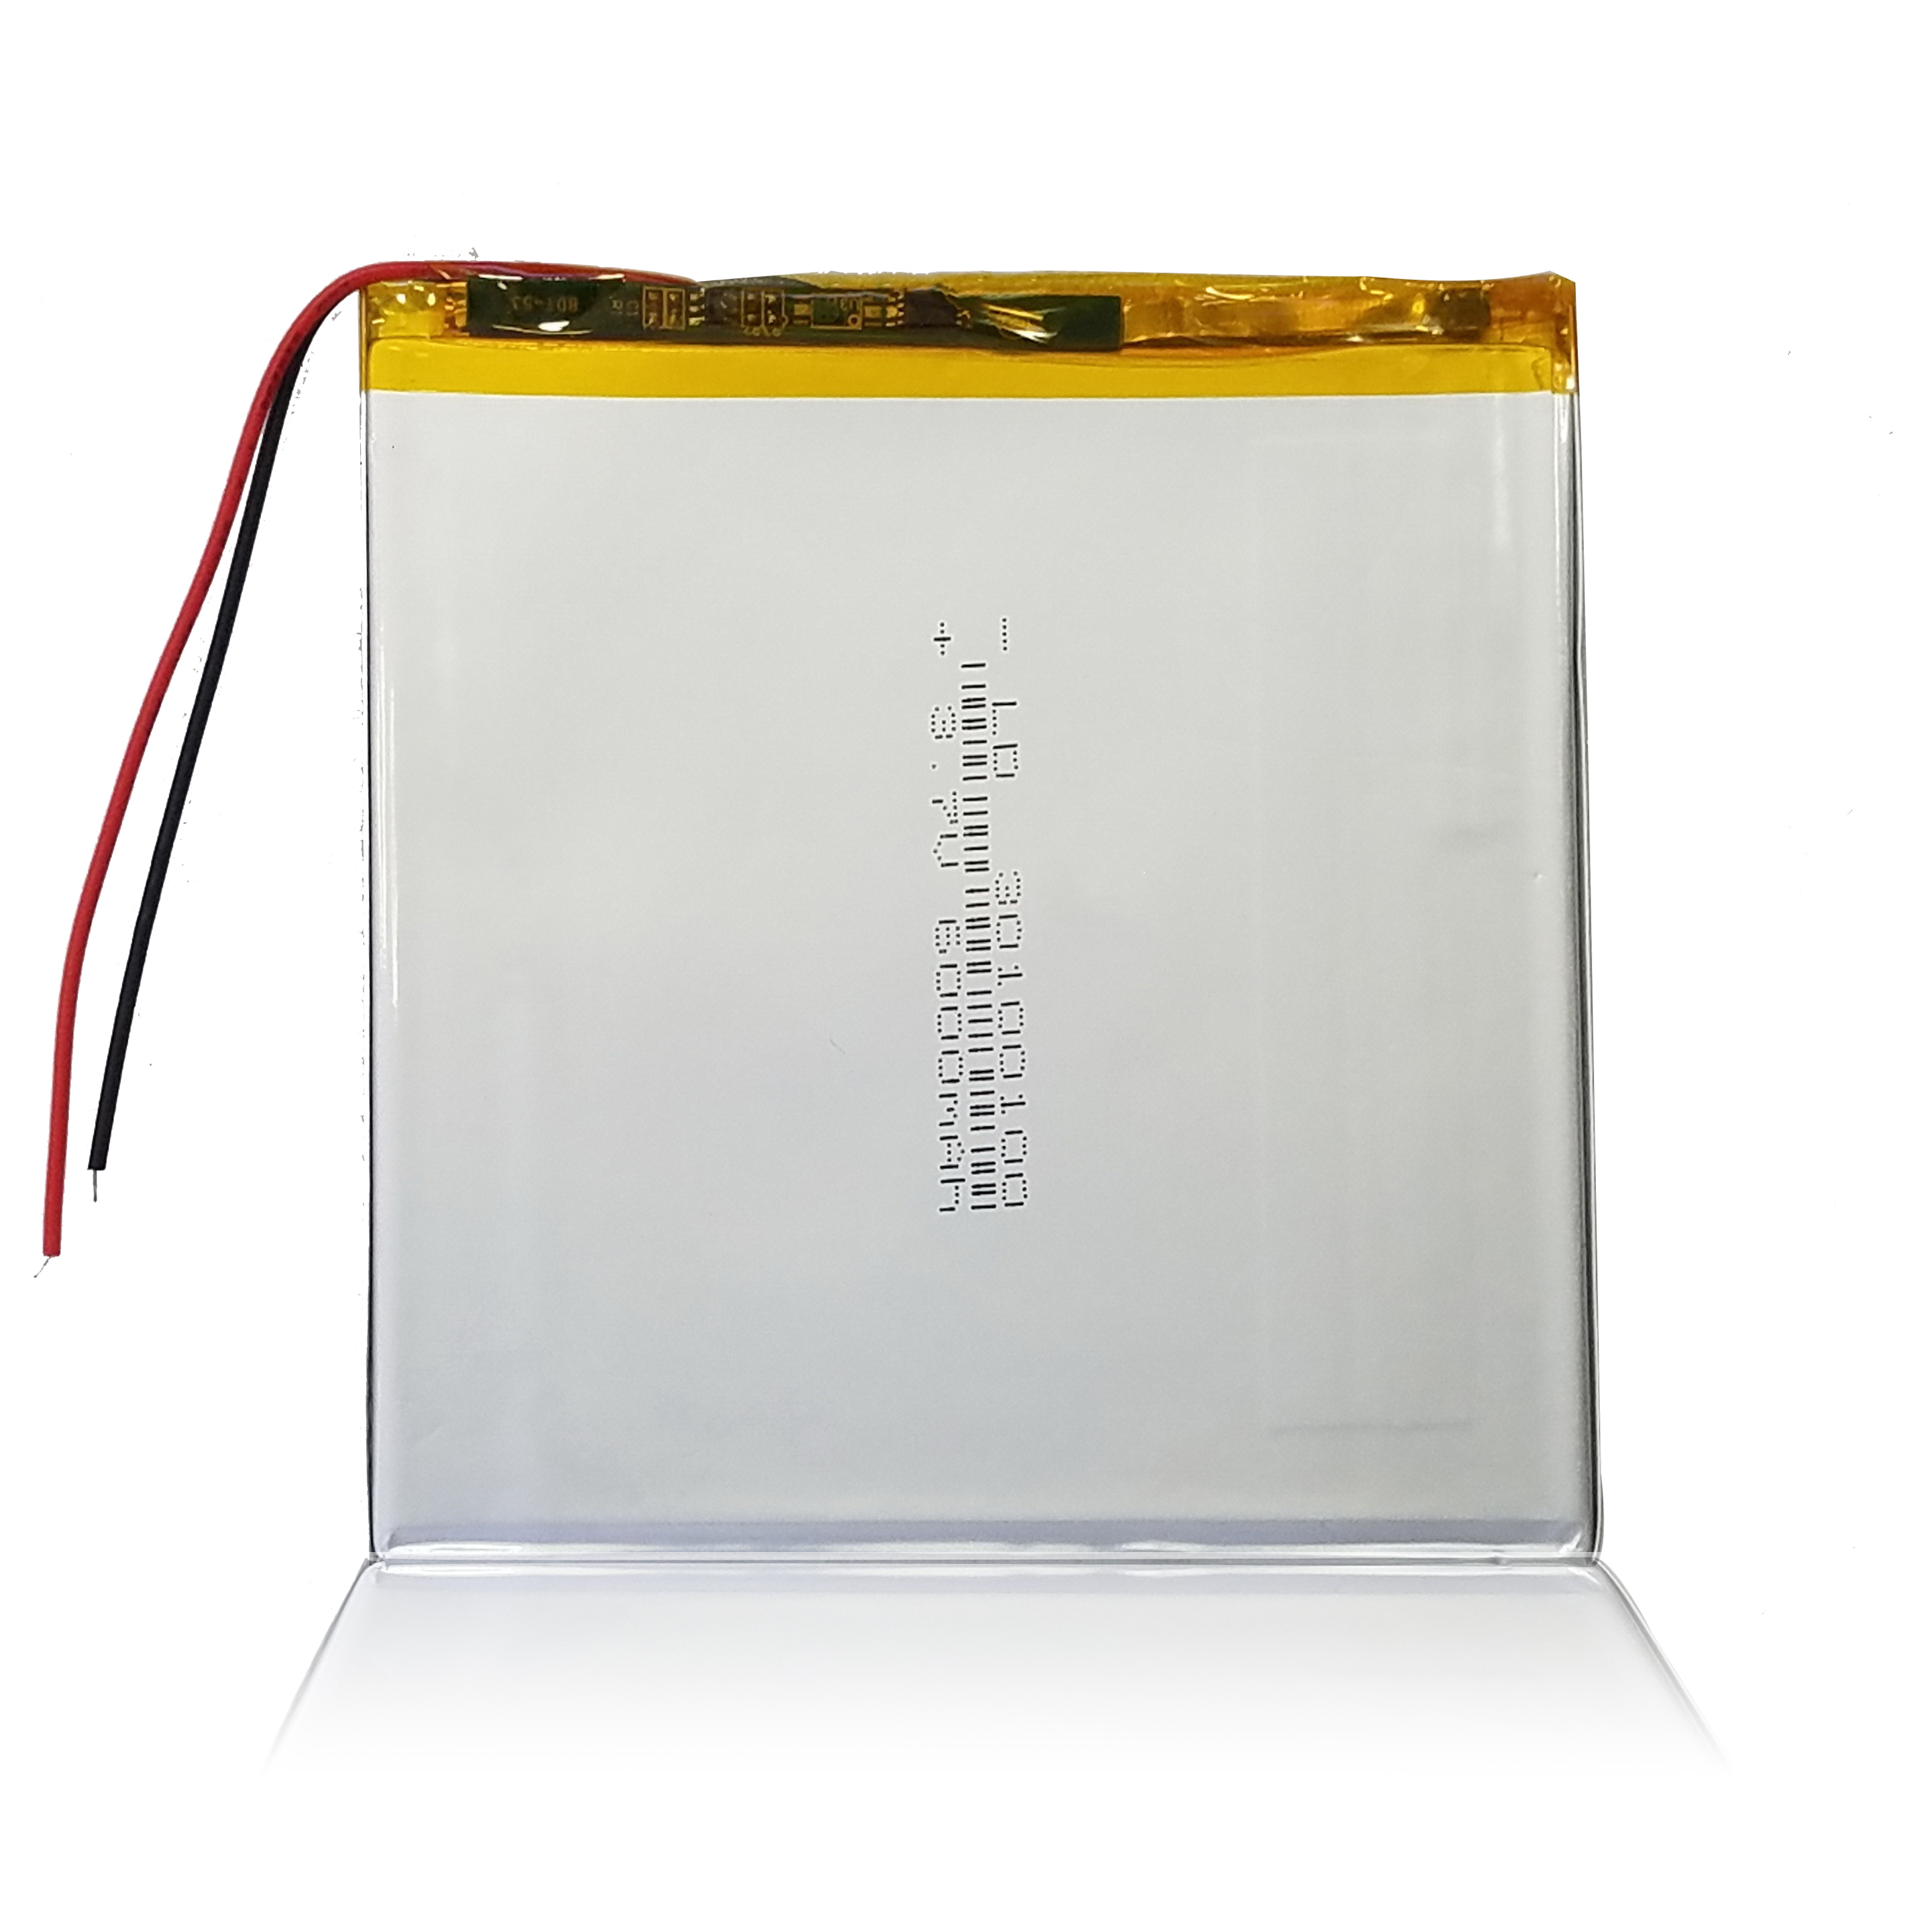 30100100 lithium polymer <font><b>battery</b></font> 3x100x100mm <font><b>3.7v</b></font> <font><b>6000mah</b></font> <font><b>tablet</b></font> <font><b>battery</b></font> 2 wire image